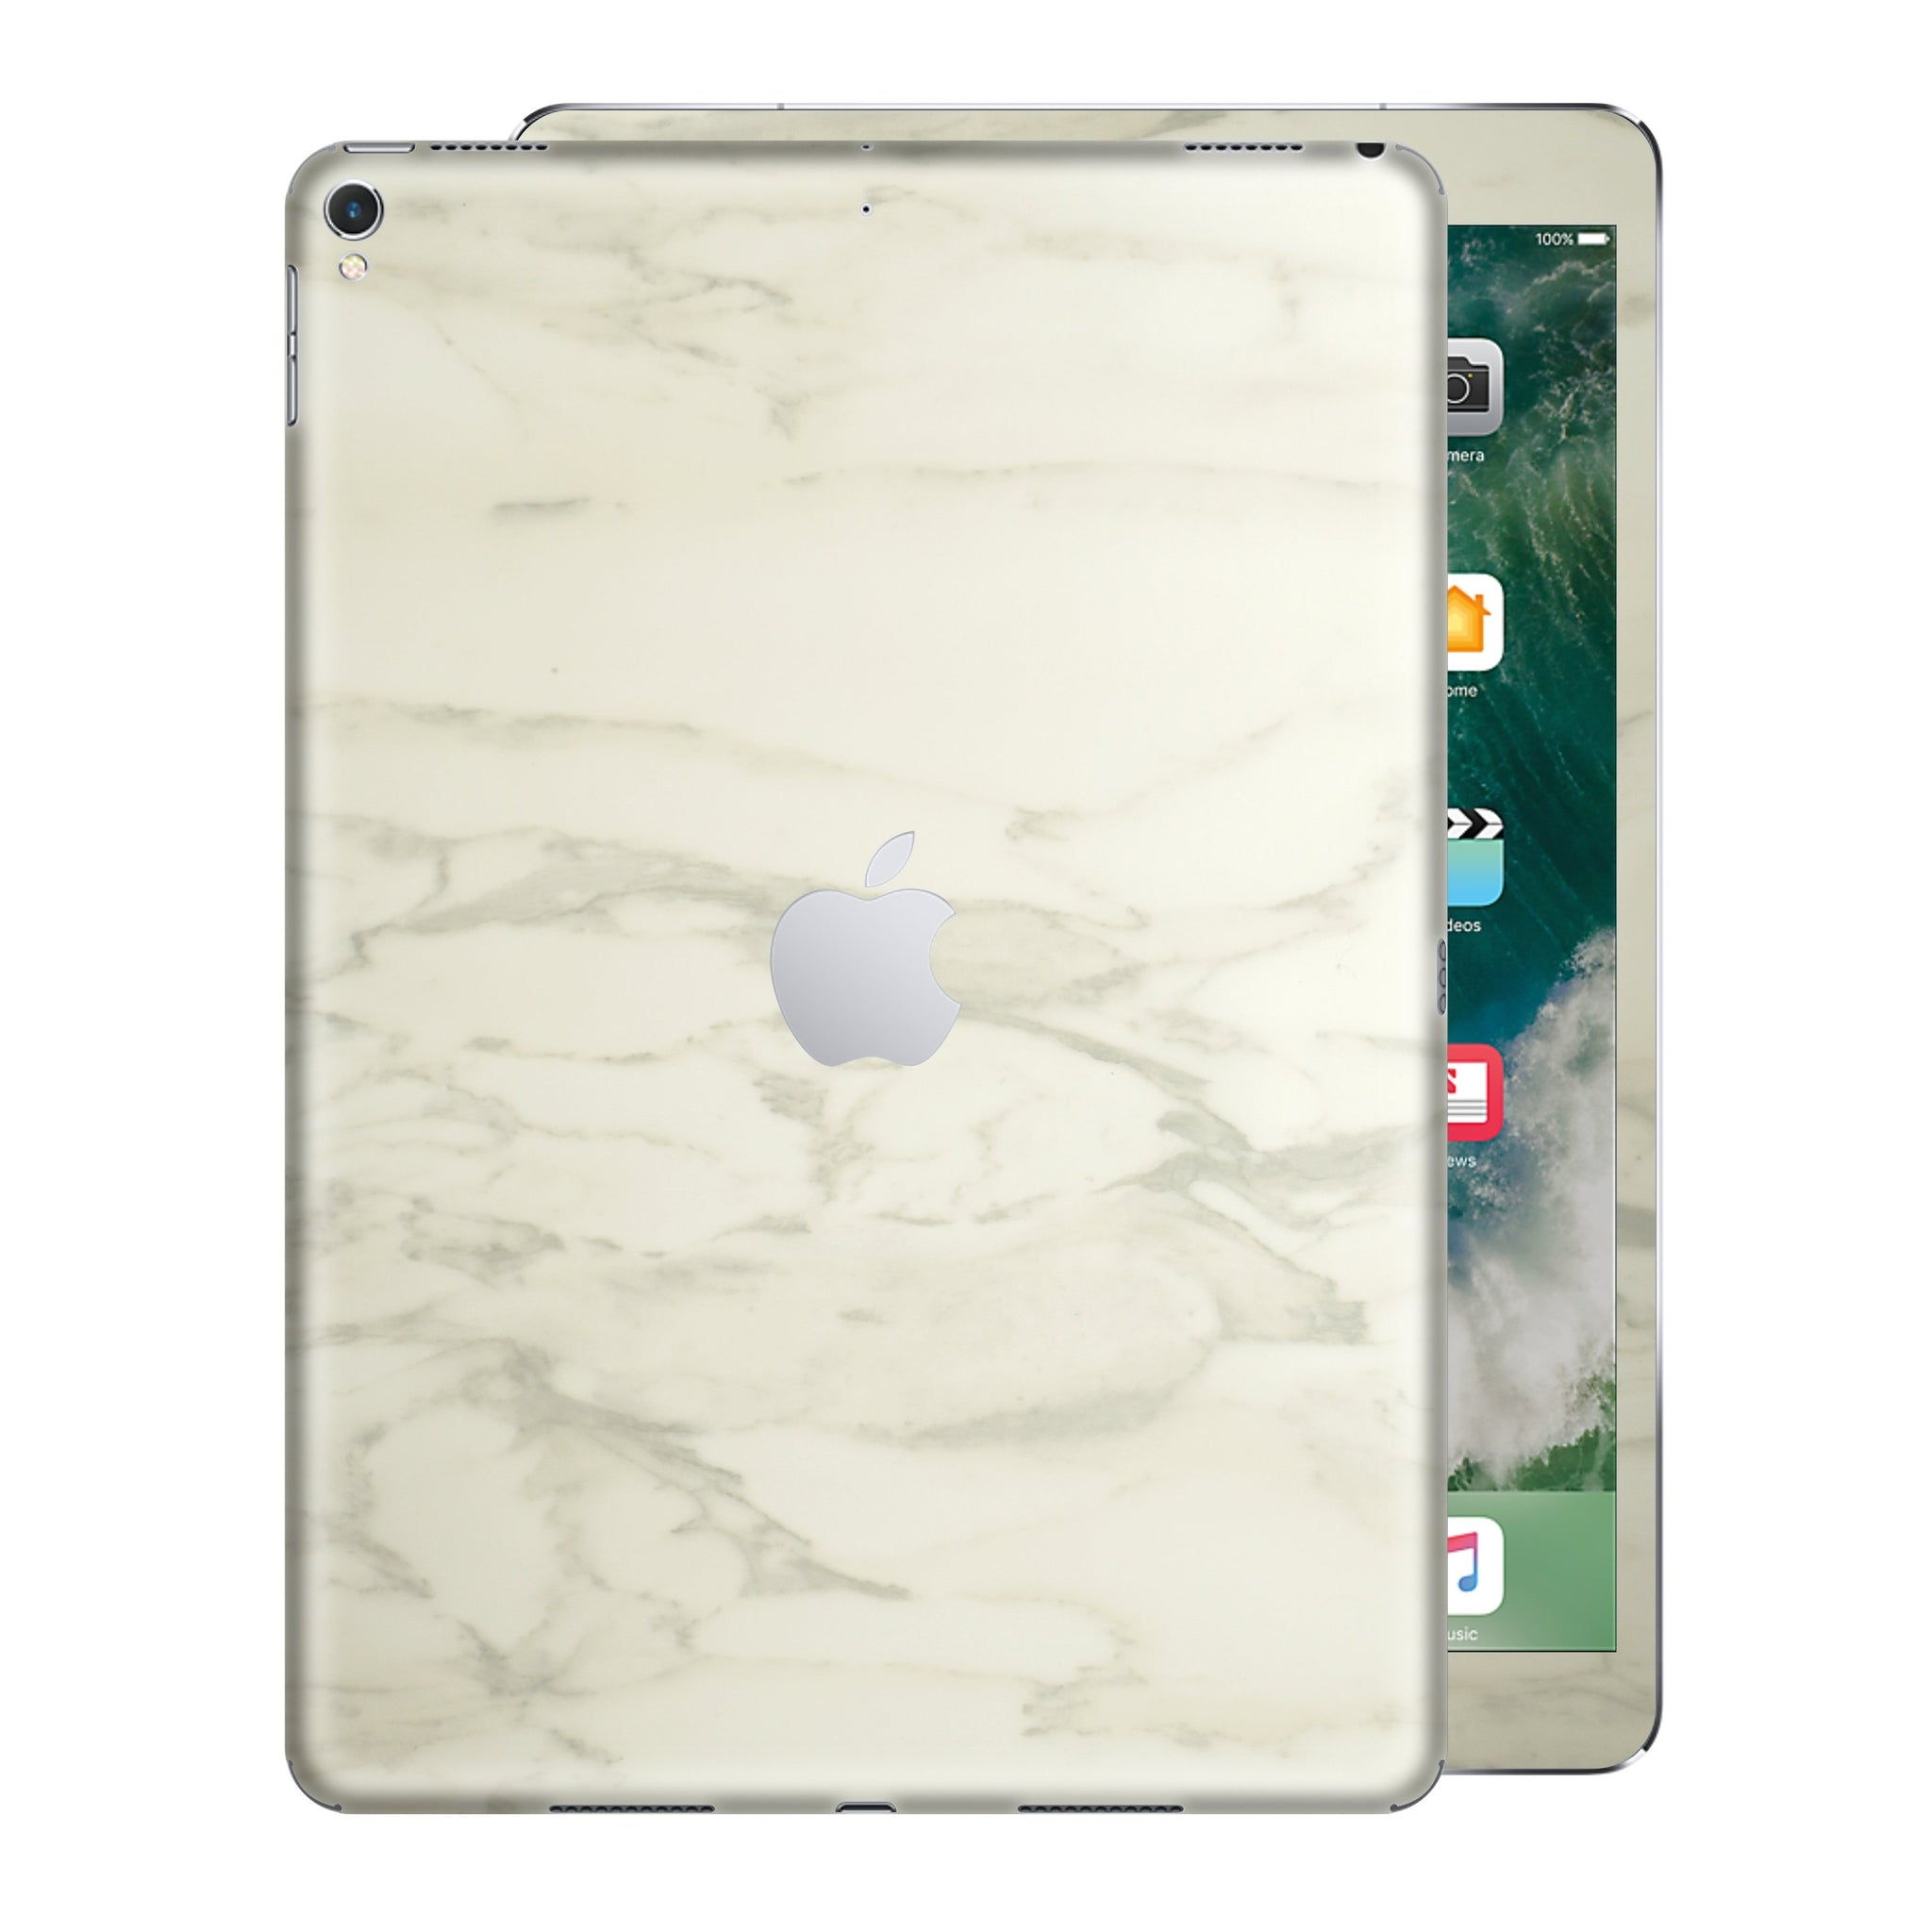 iPad PRO 10.5 inch 2017 Luxuria White Marble Skin Wrap Decal Protector | EasySkinz